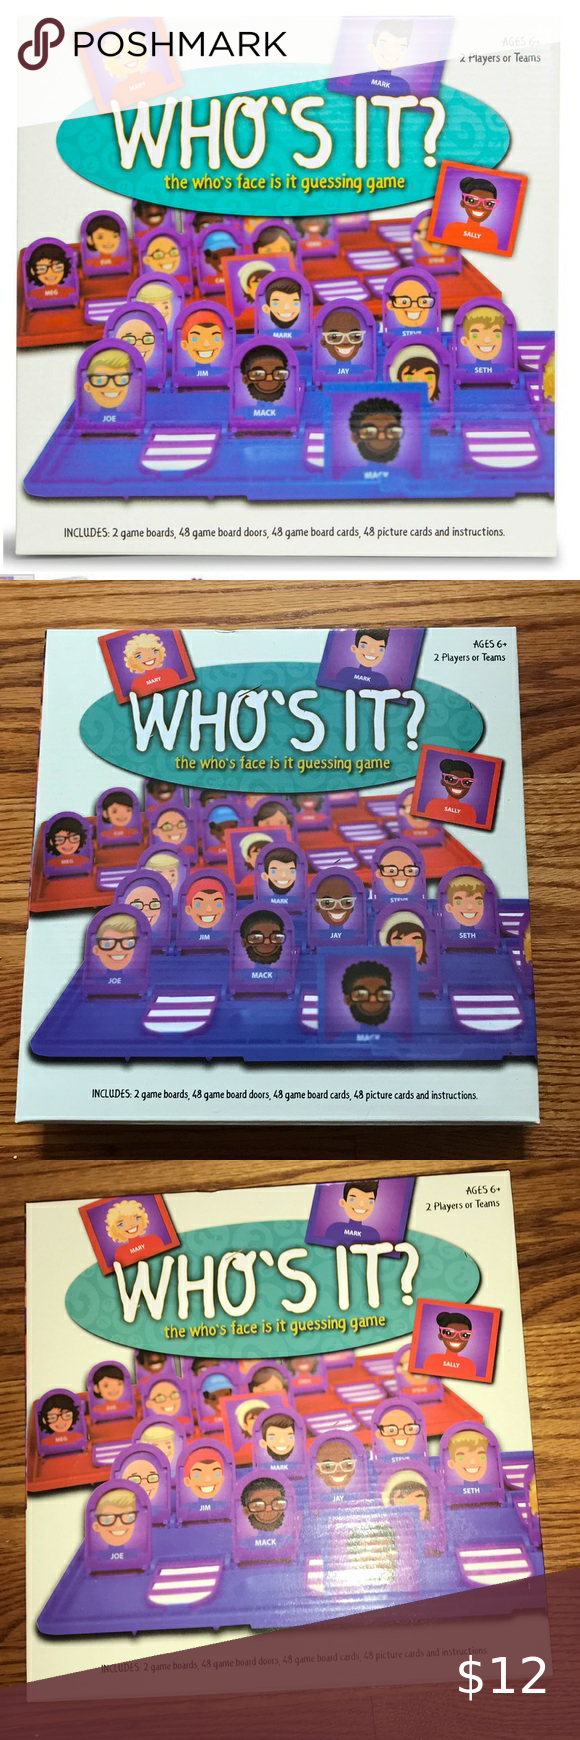 Who's It? Memory Board Game in 2020 Board games, Classic